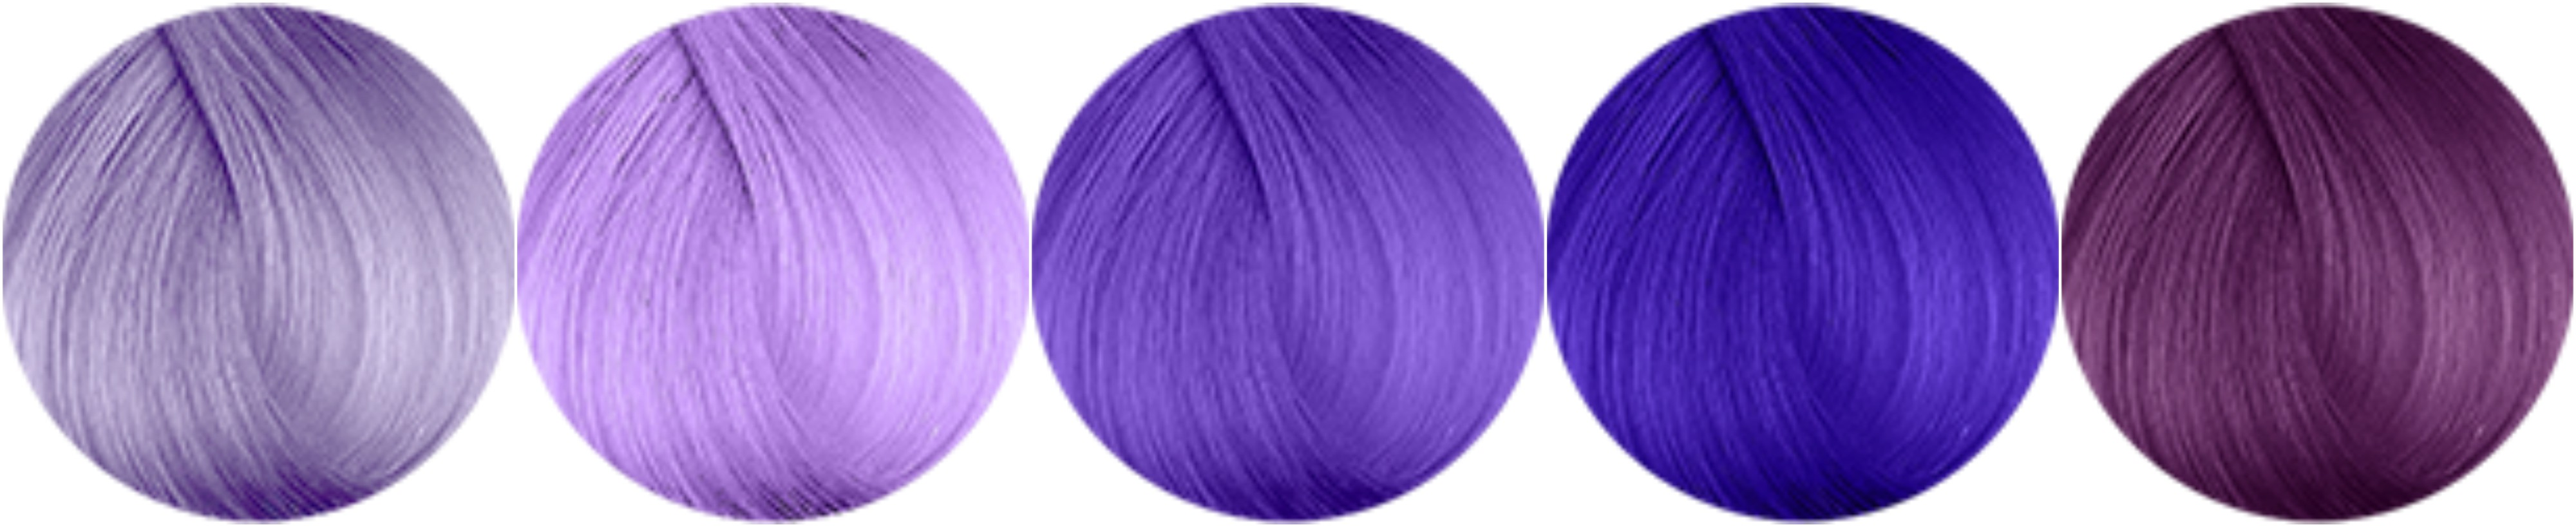 Purple Hair Dye Colour Pallette